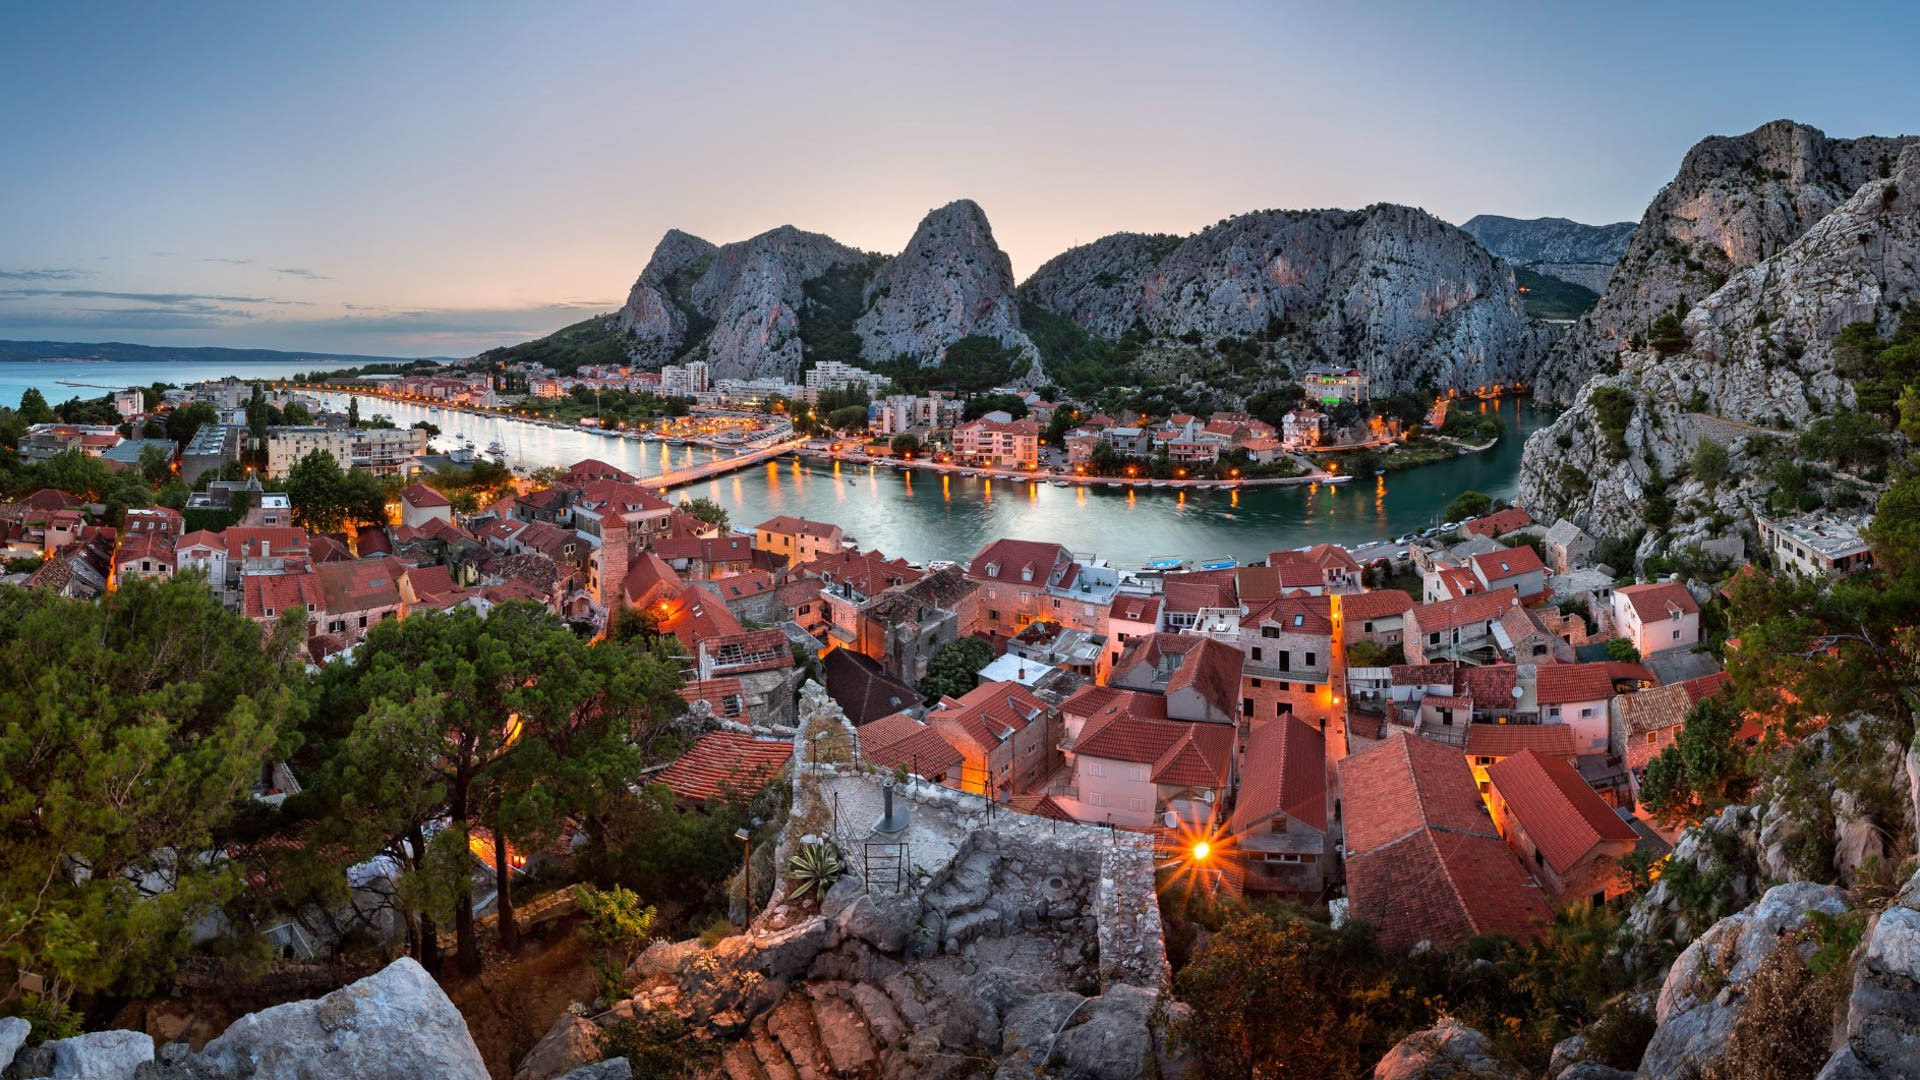 Omiš - Adriatic Sea | Croatia Cruise Croatia Cruise